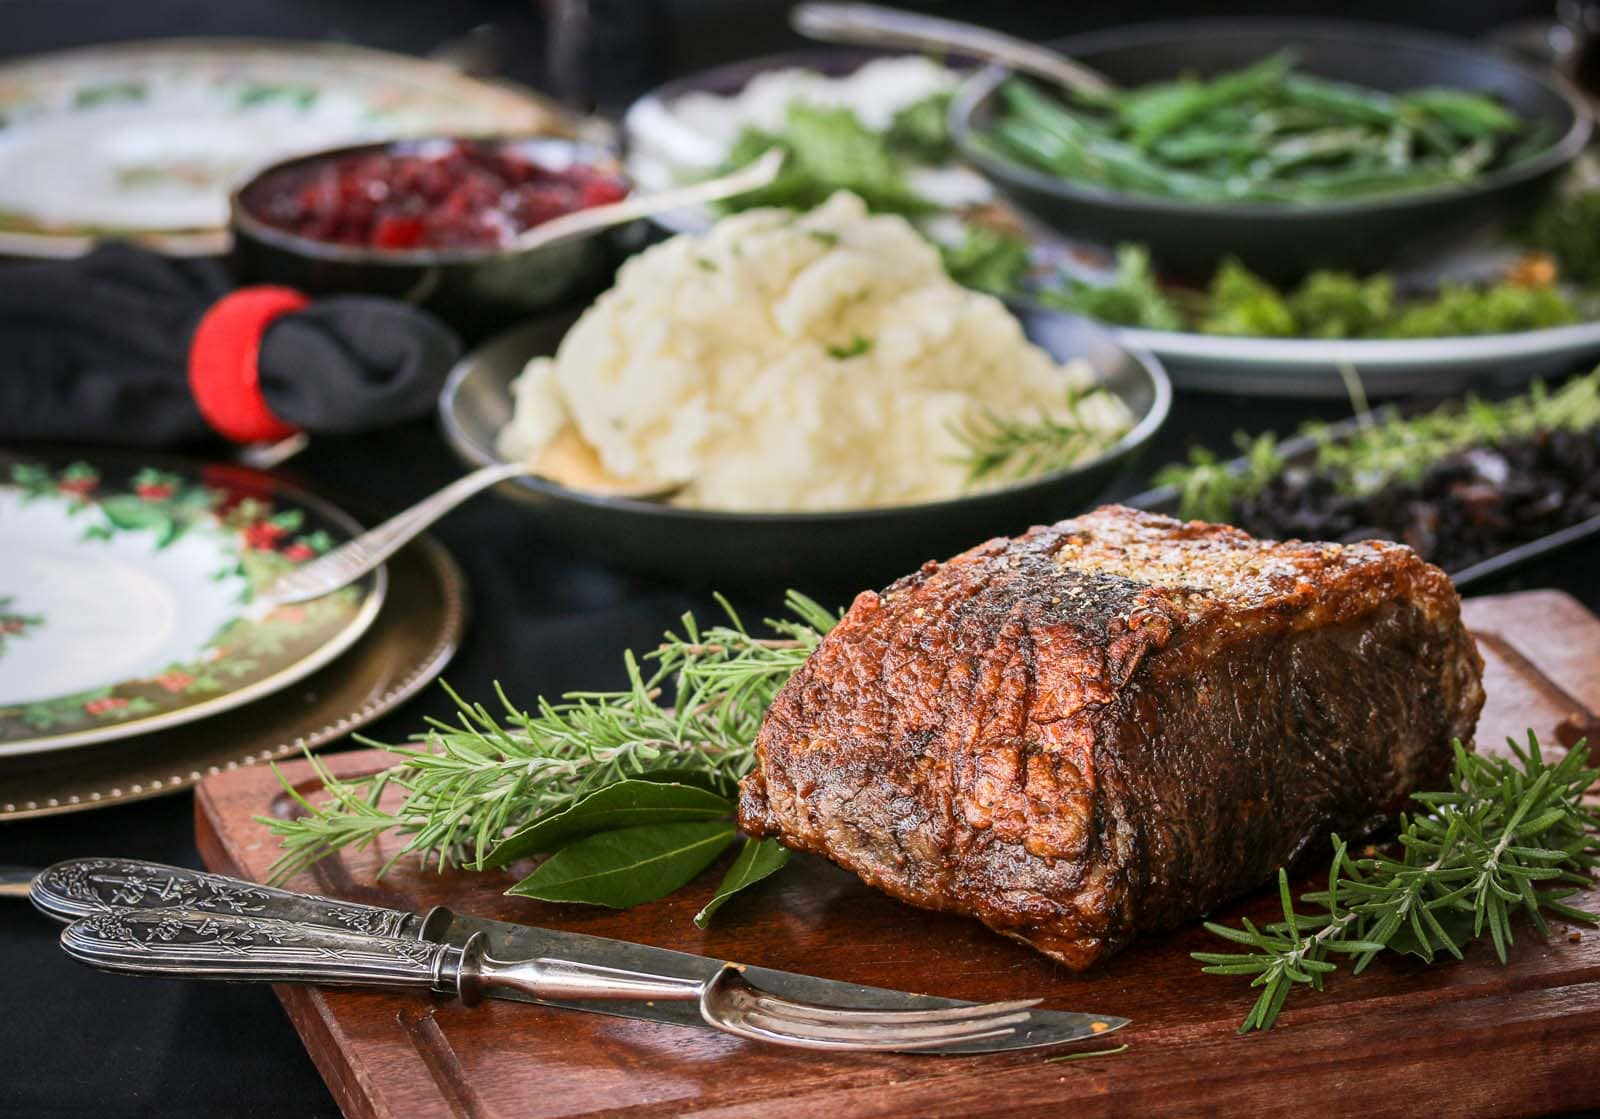 Beefer's Golden Crust Holiday Beef Roast